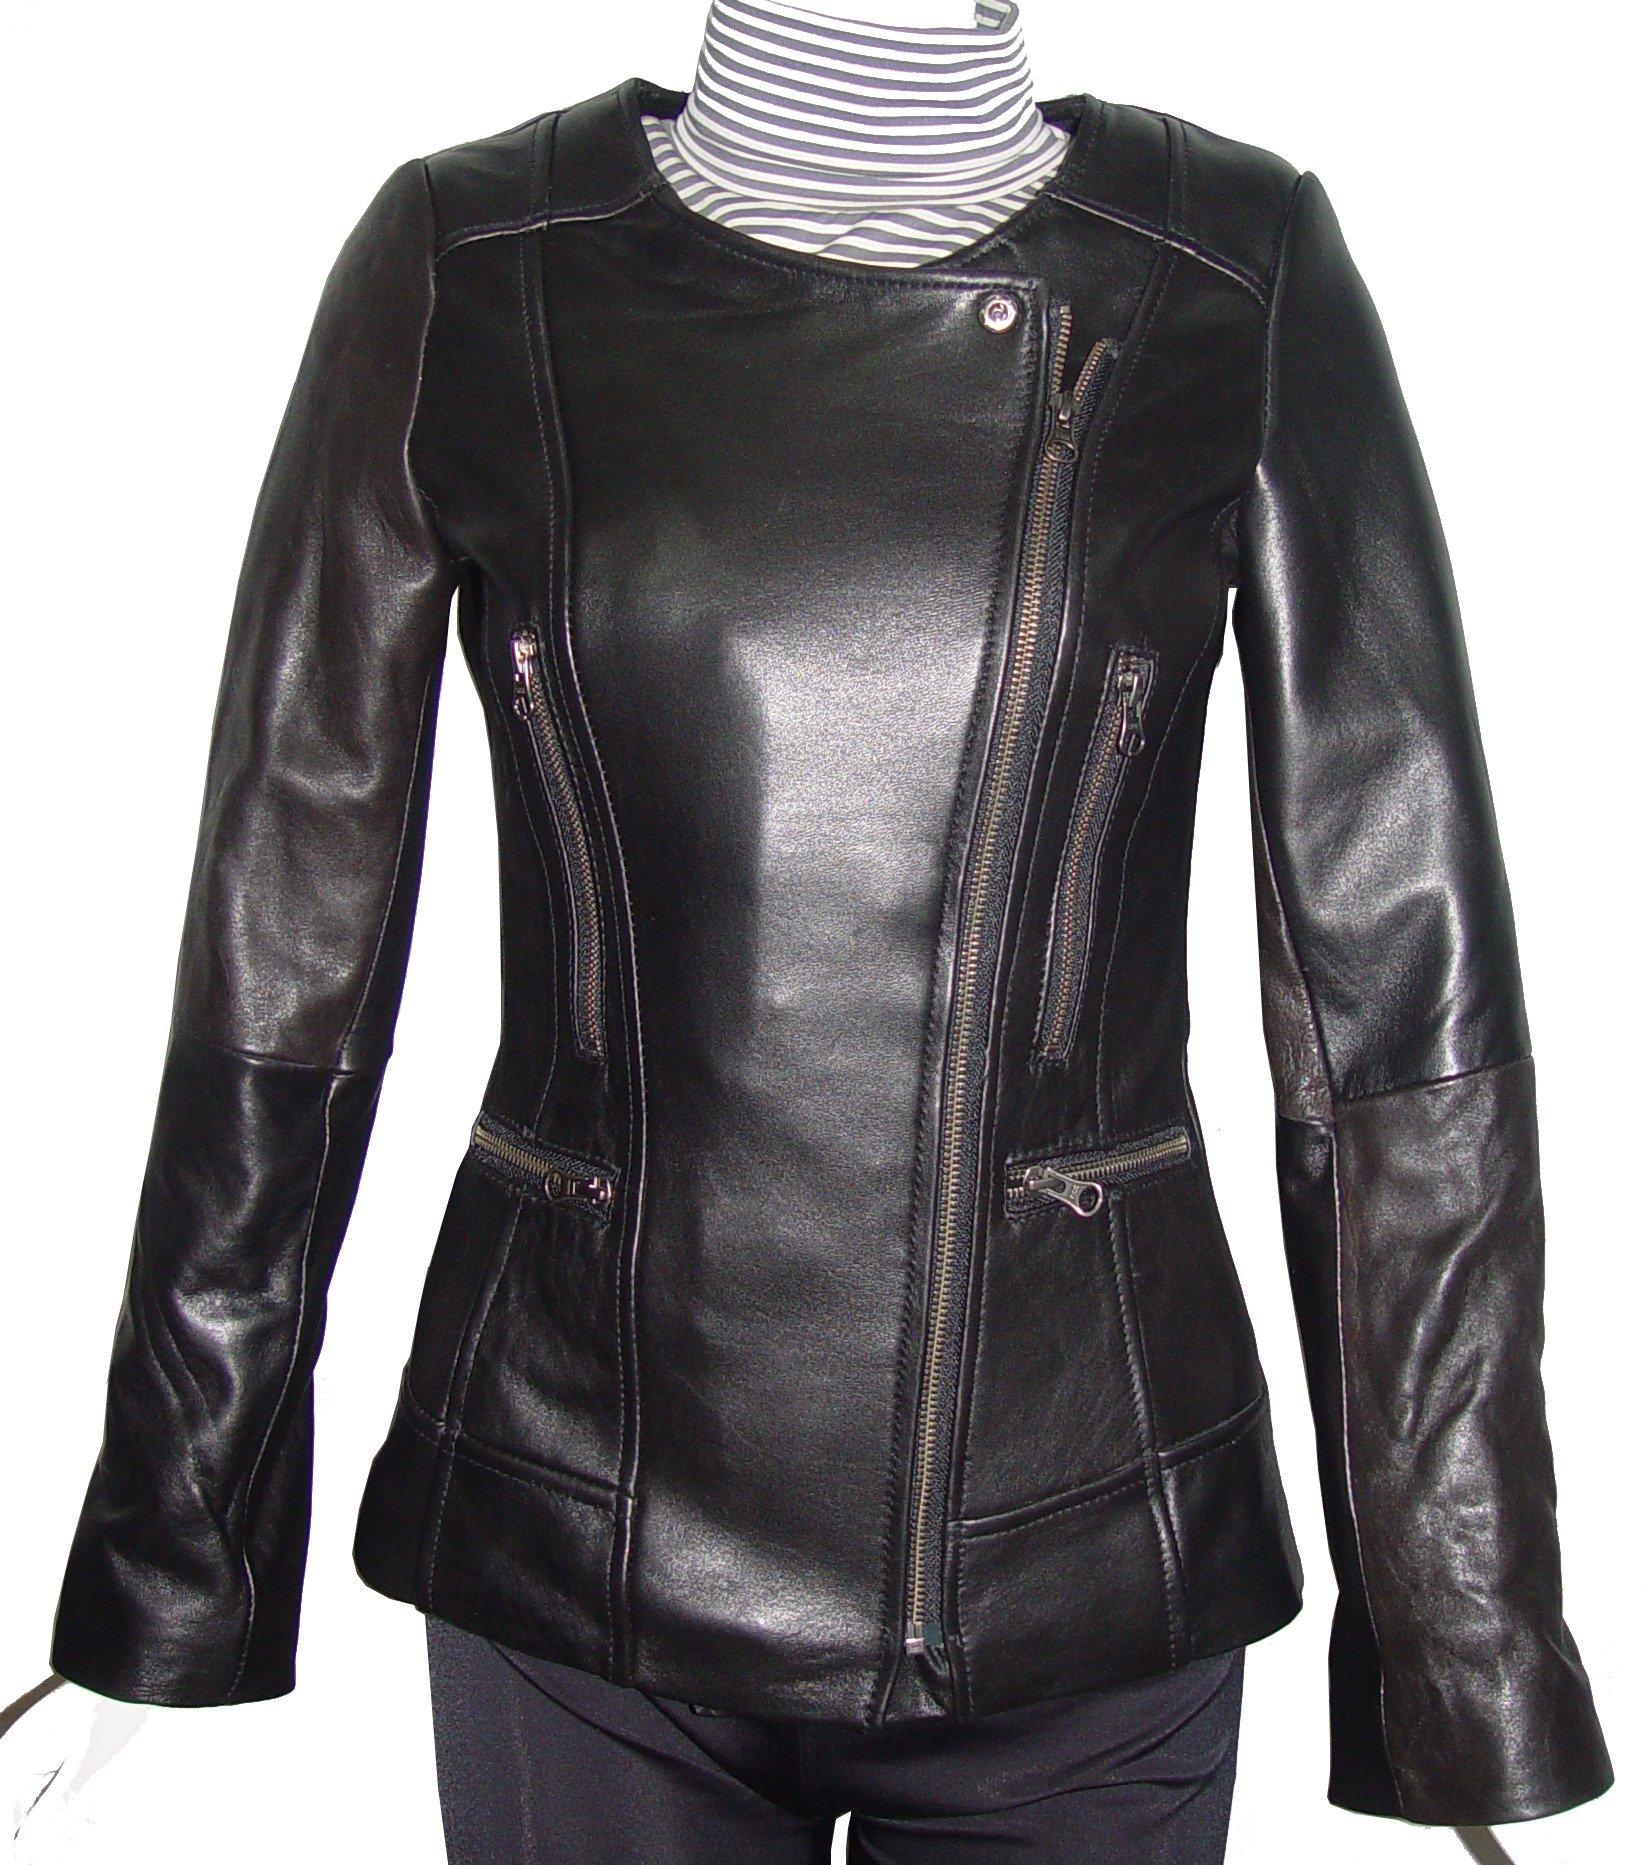 Nettailor Women PETITE & ALL SIZE Fashion 4128 Leather Motorcycle Jacket